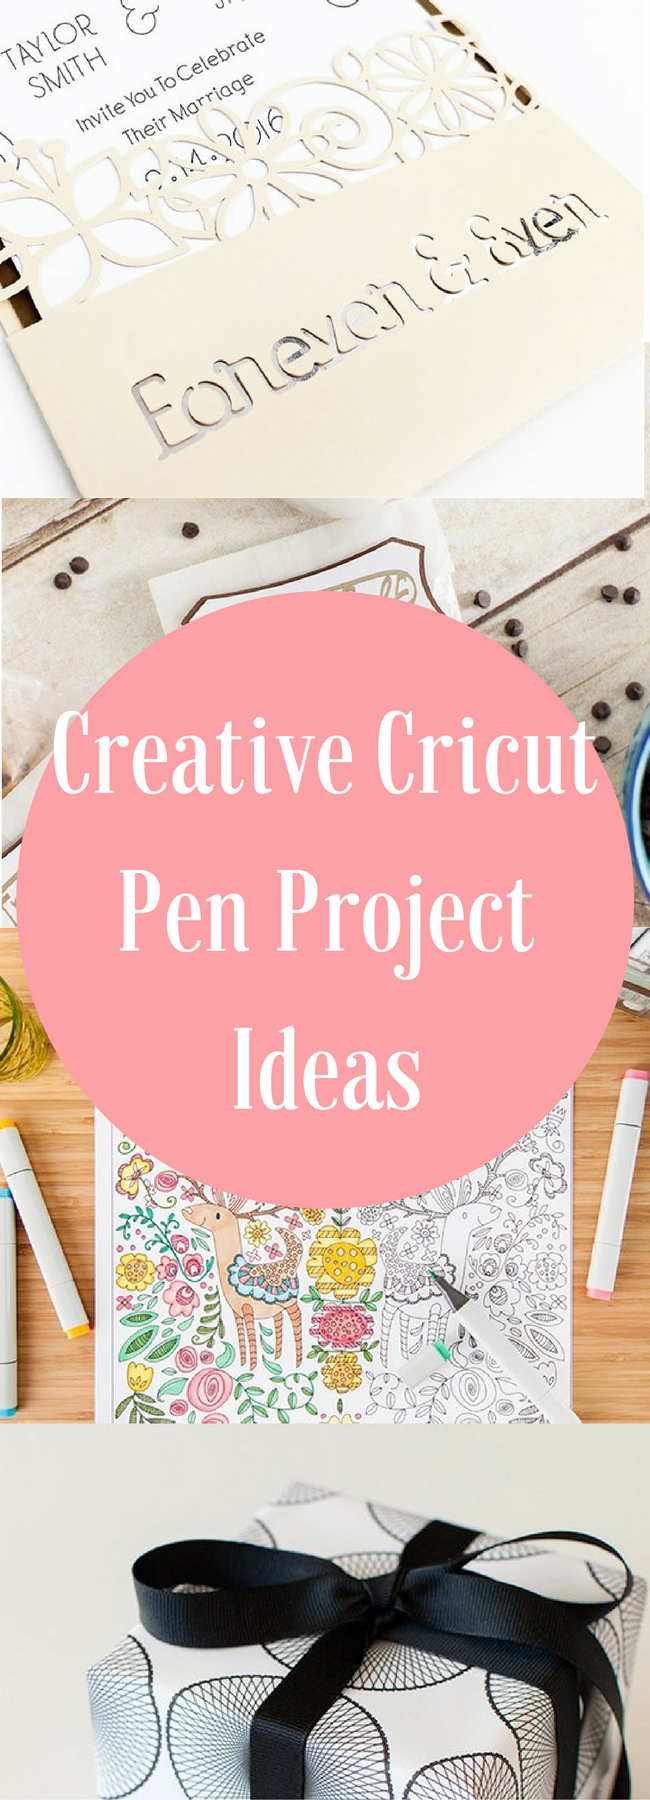 Cricut Pen Projects / Cricut Projects / DIY Cricut Projects / Cricut Ideas / Cricut Projects / Cricut Pens